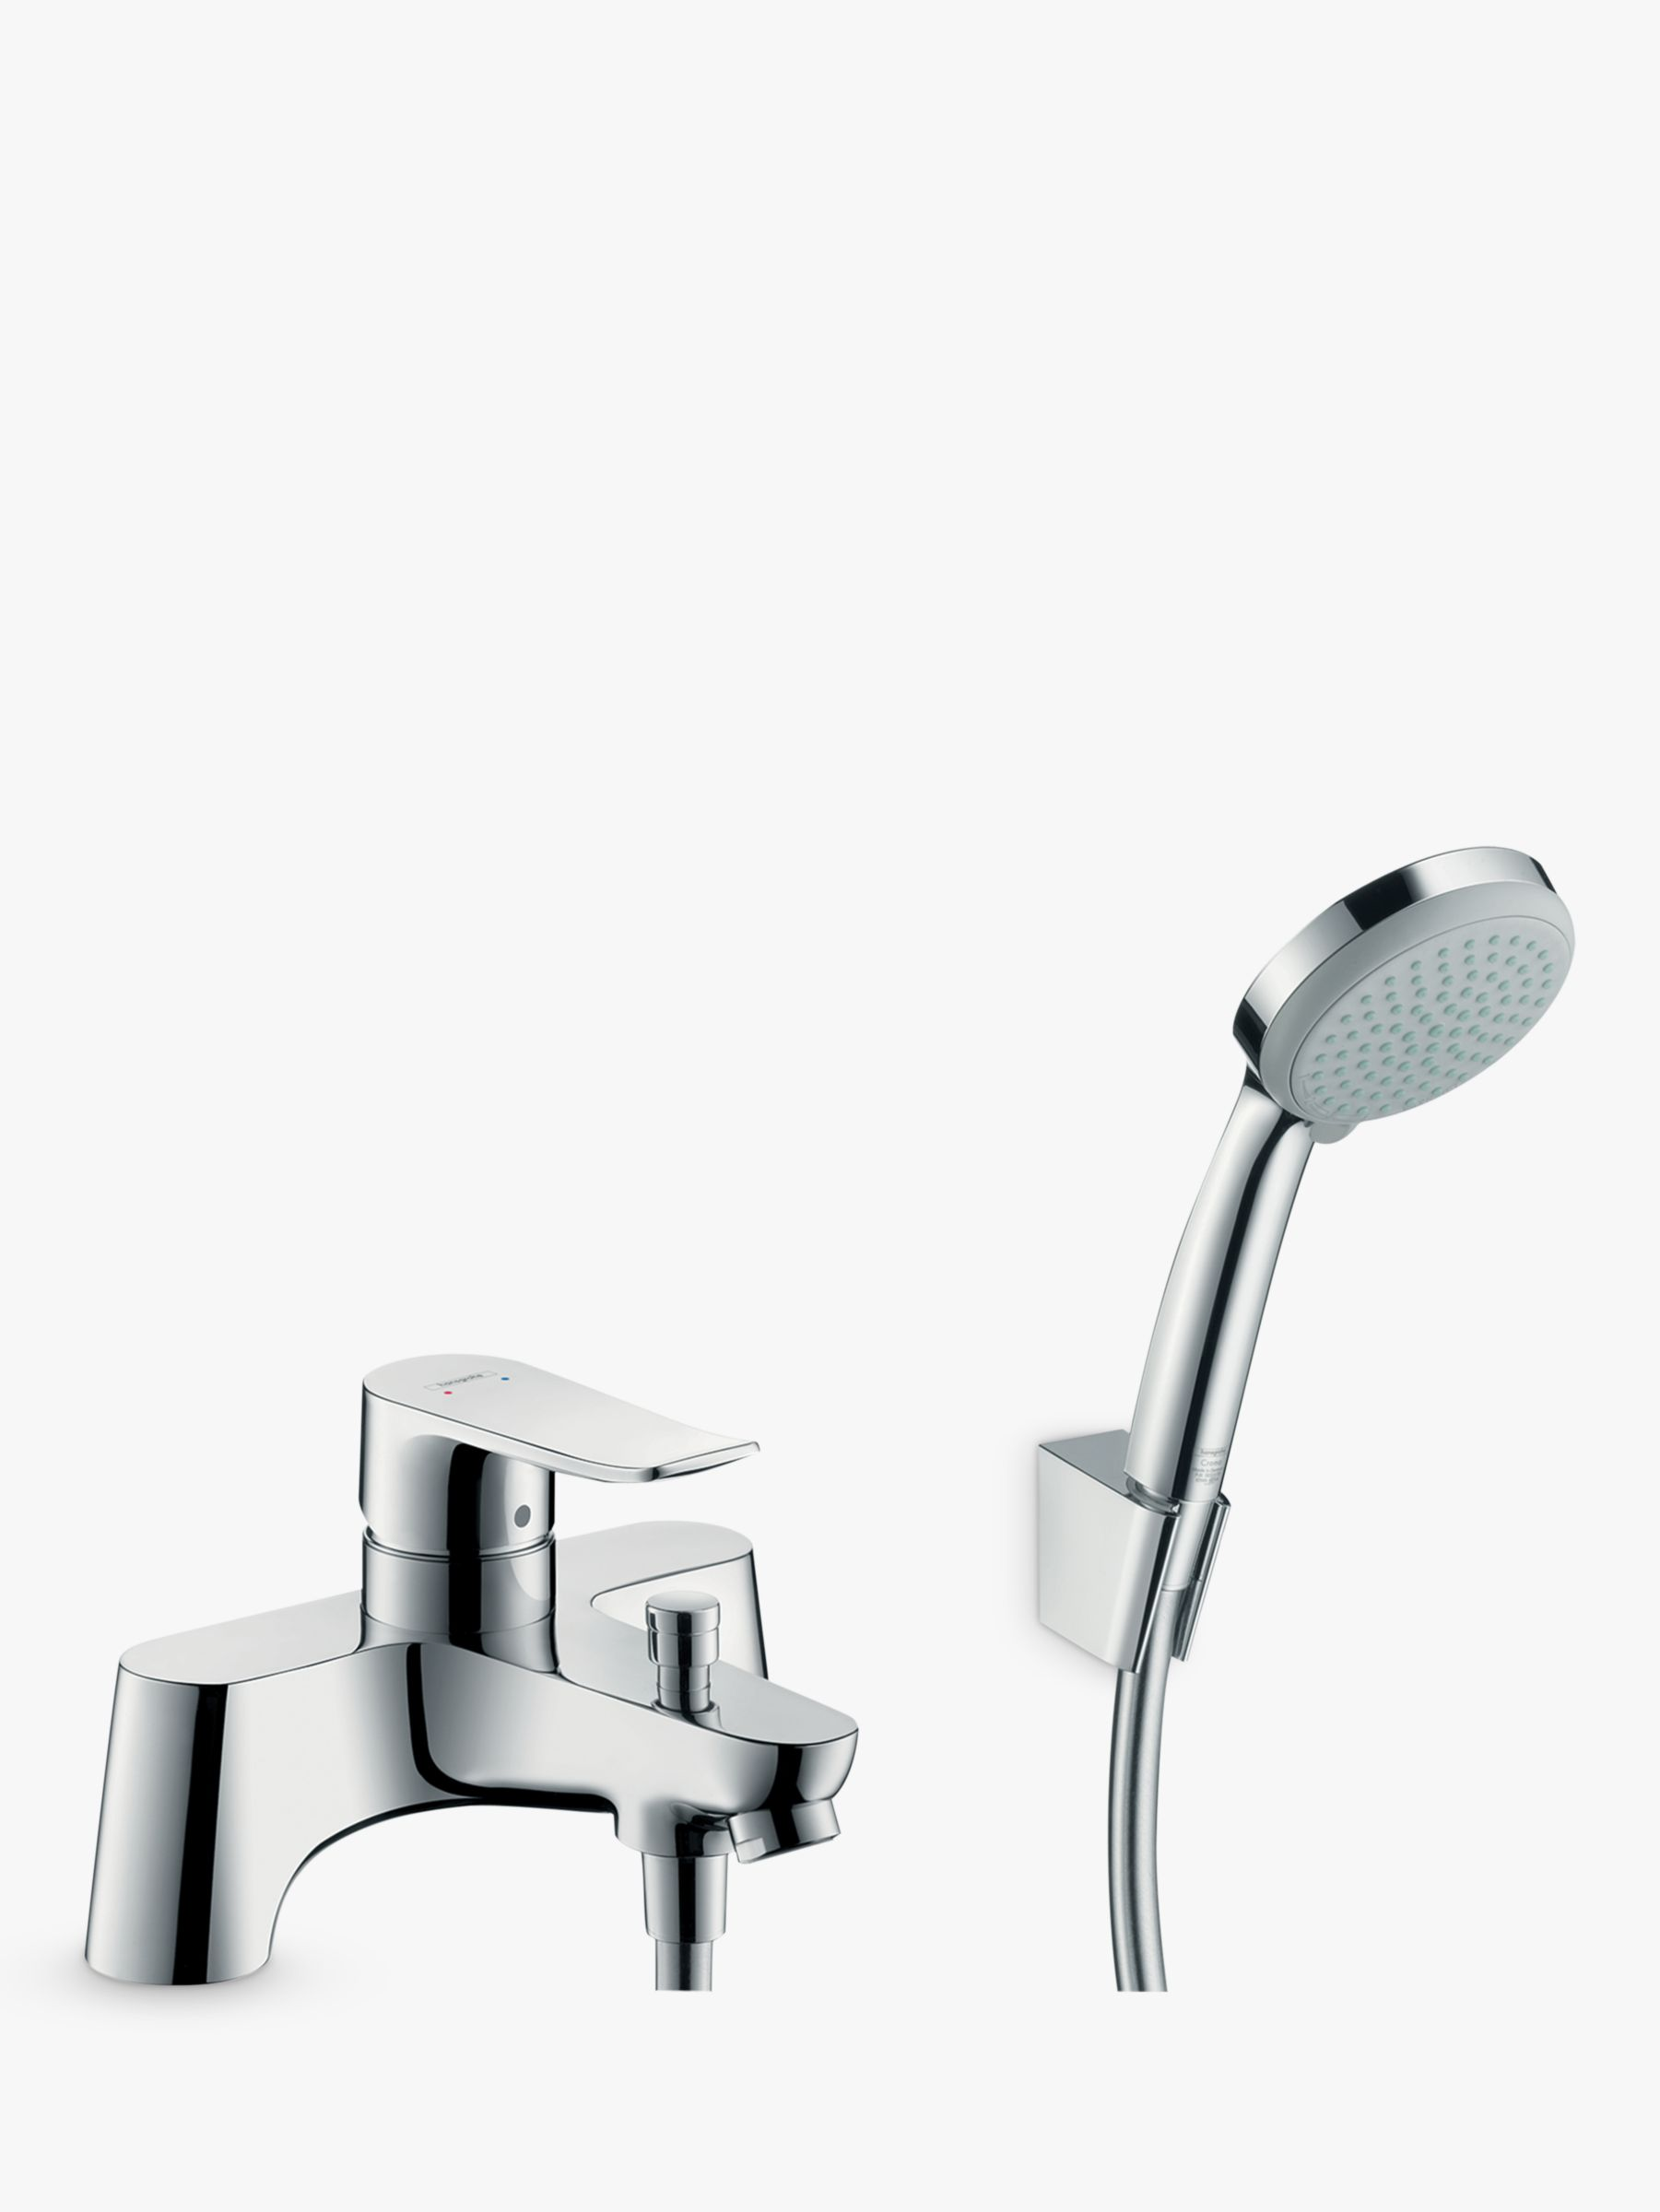 Hansgrohe Hansgrohe Metris Single Lever Bathroom Mixer Tap with Shower Head, Chrome